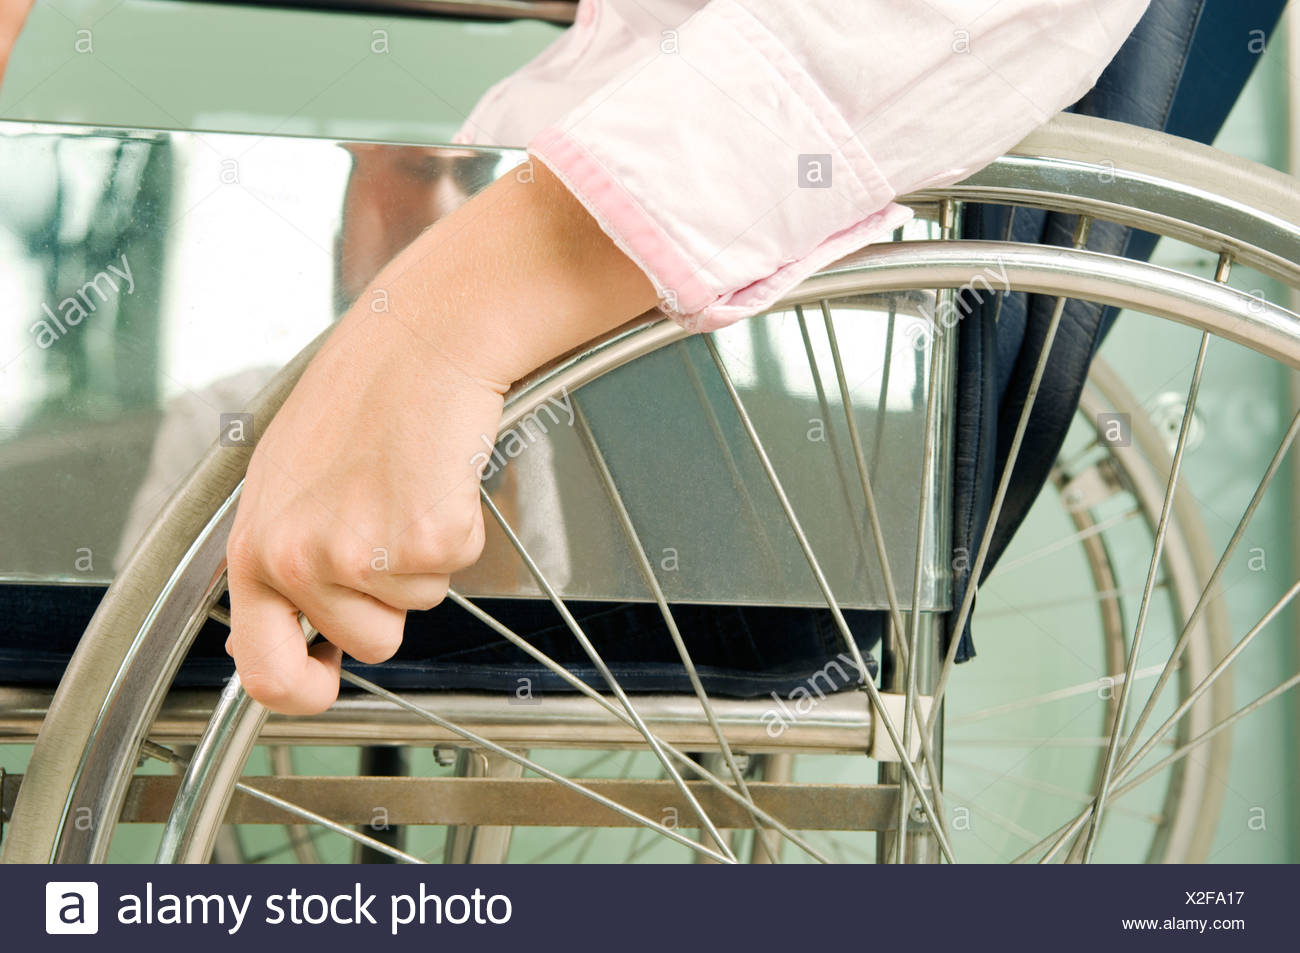 A woman sitting in a wheelchair - Stock Image